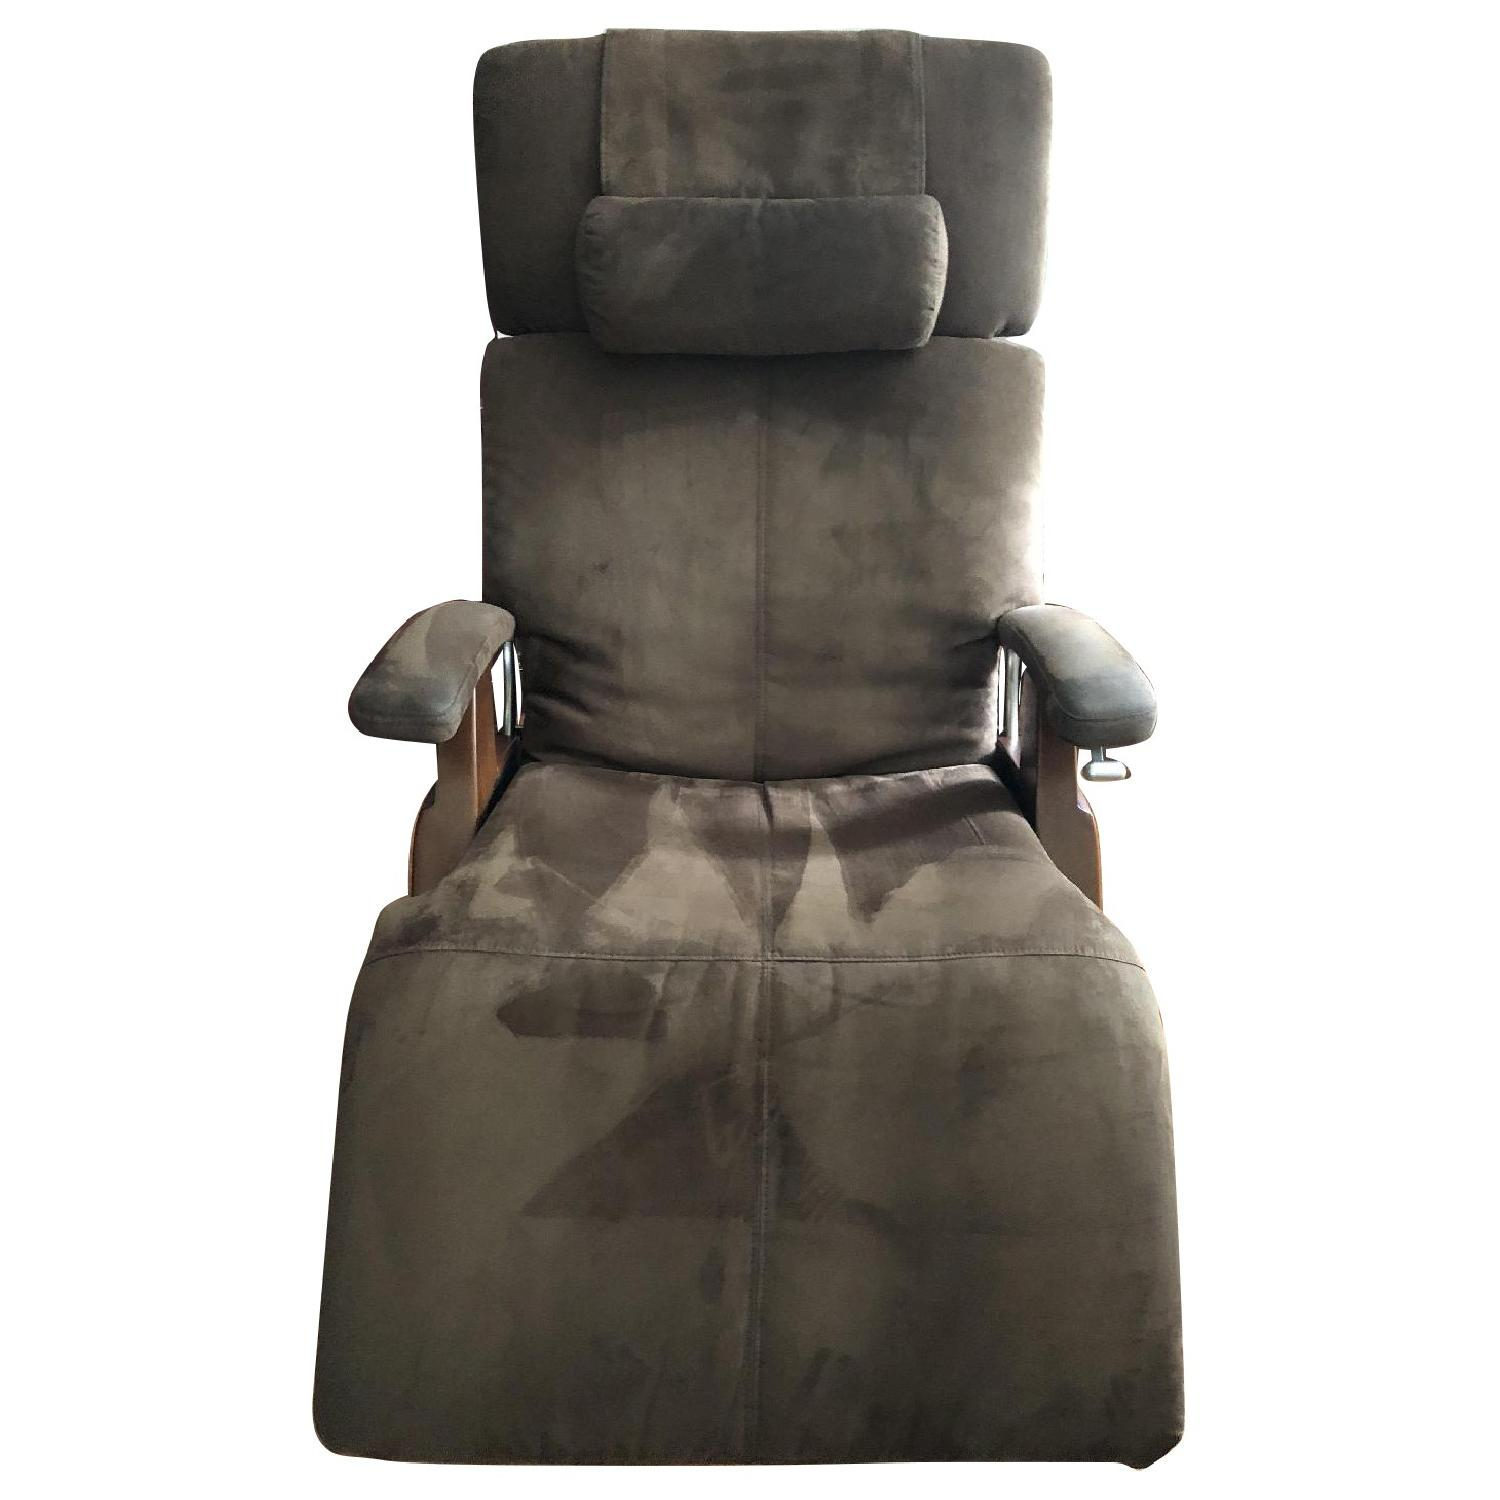 Human Touch Zero Gravity Perfect Chair/Recliner ...  sc 1 st  AptDeco & Human Touch Zero Gravity Perfect Chair/Recliner - AptDeco